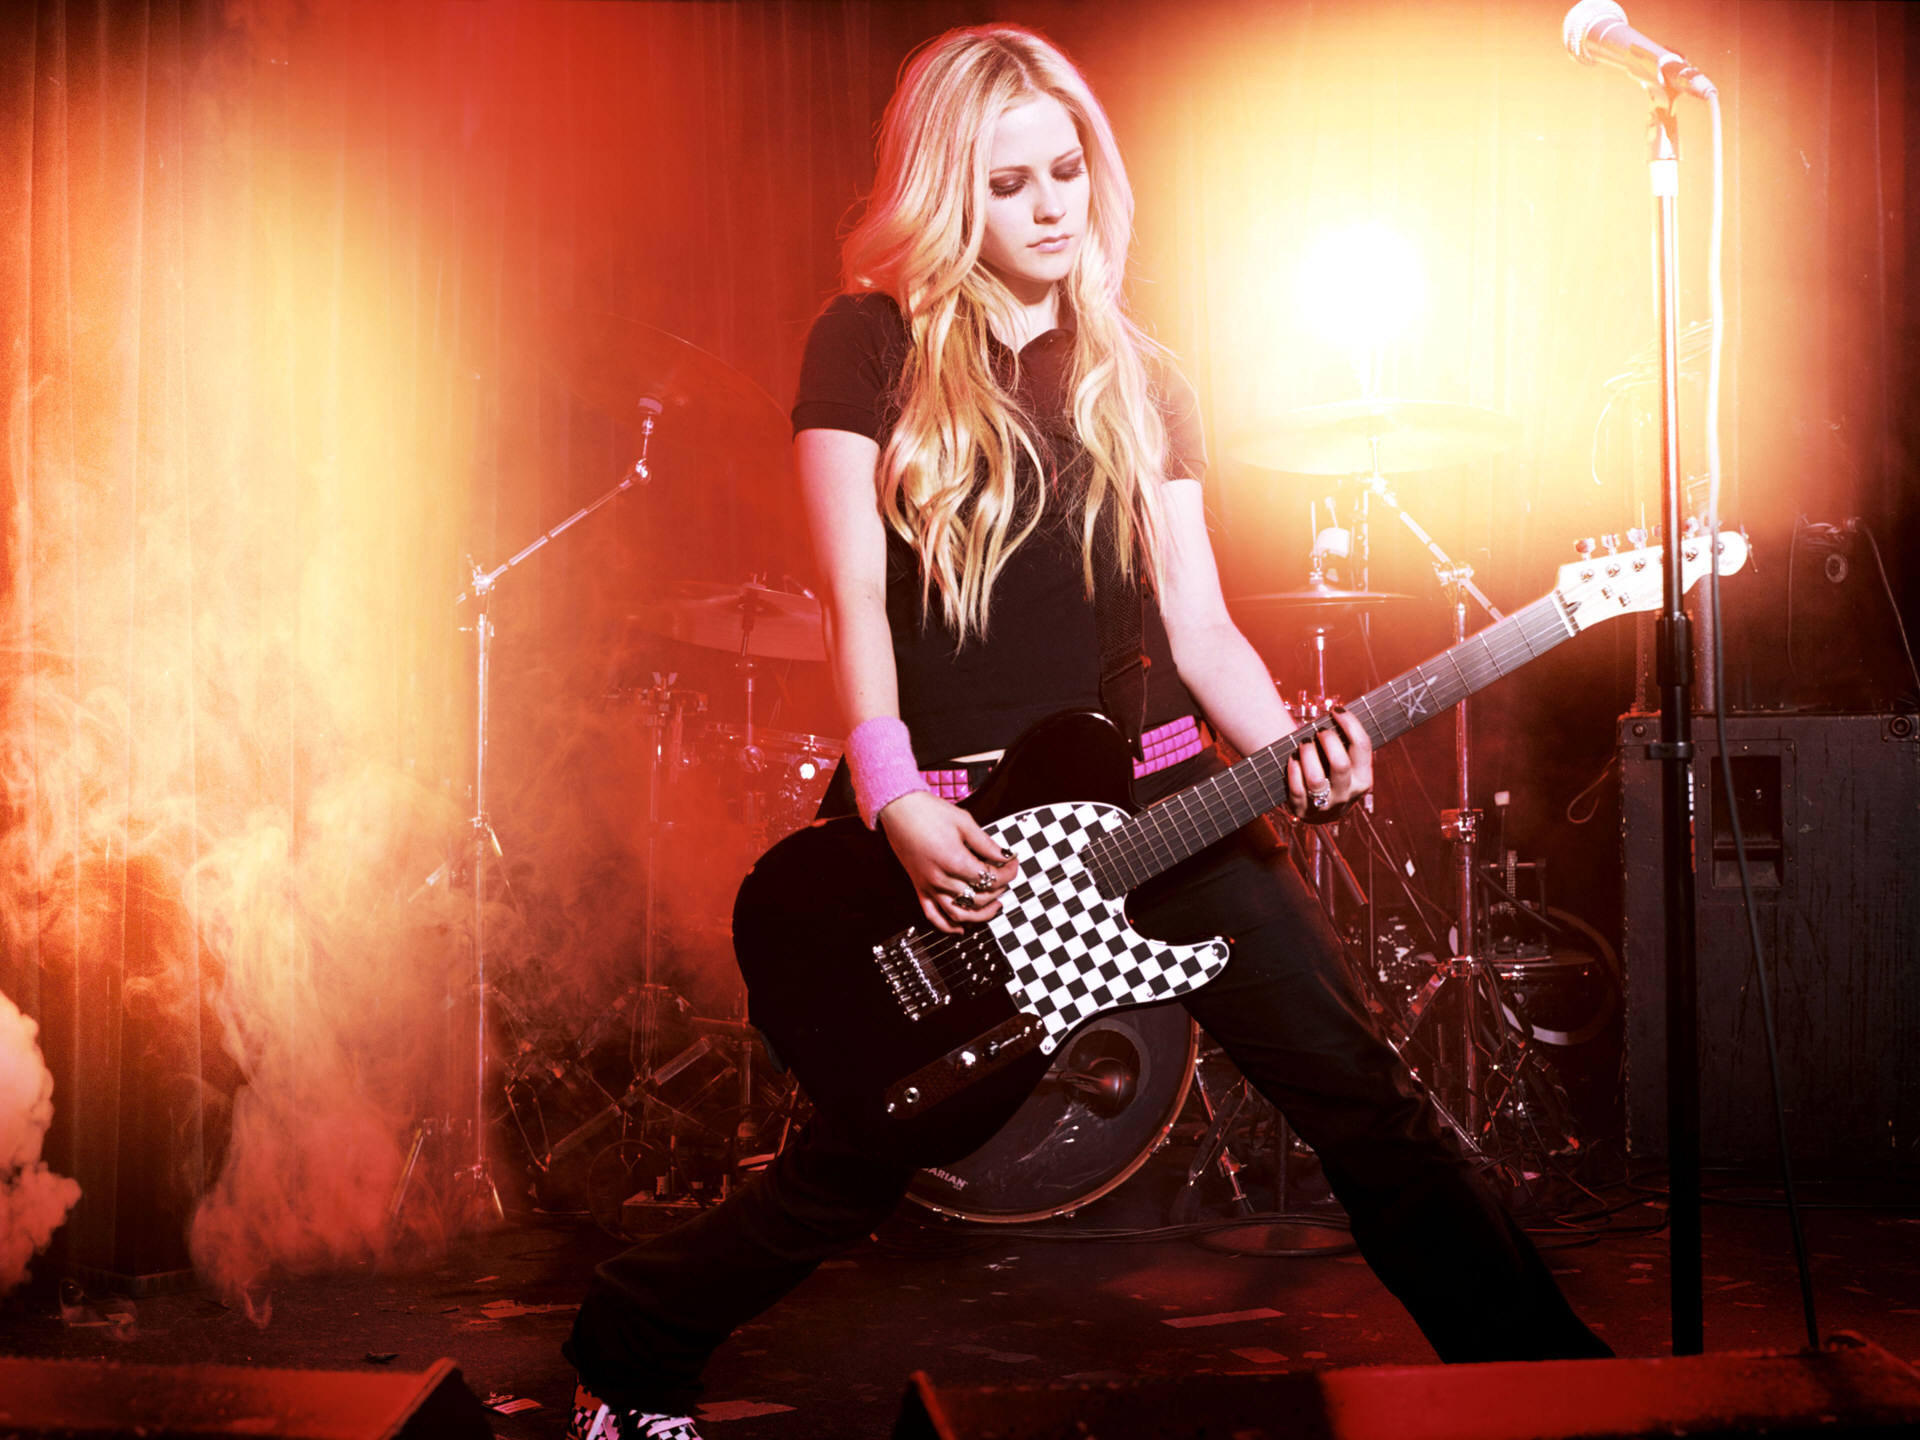 Avril Lavigne performs on stage with her guitar